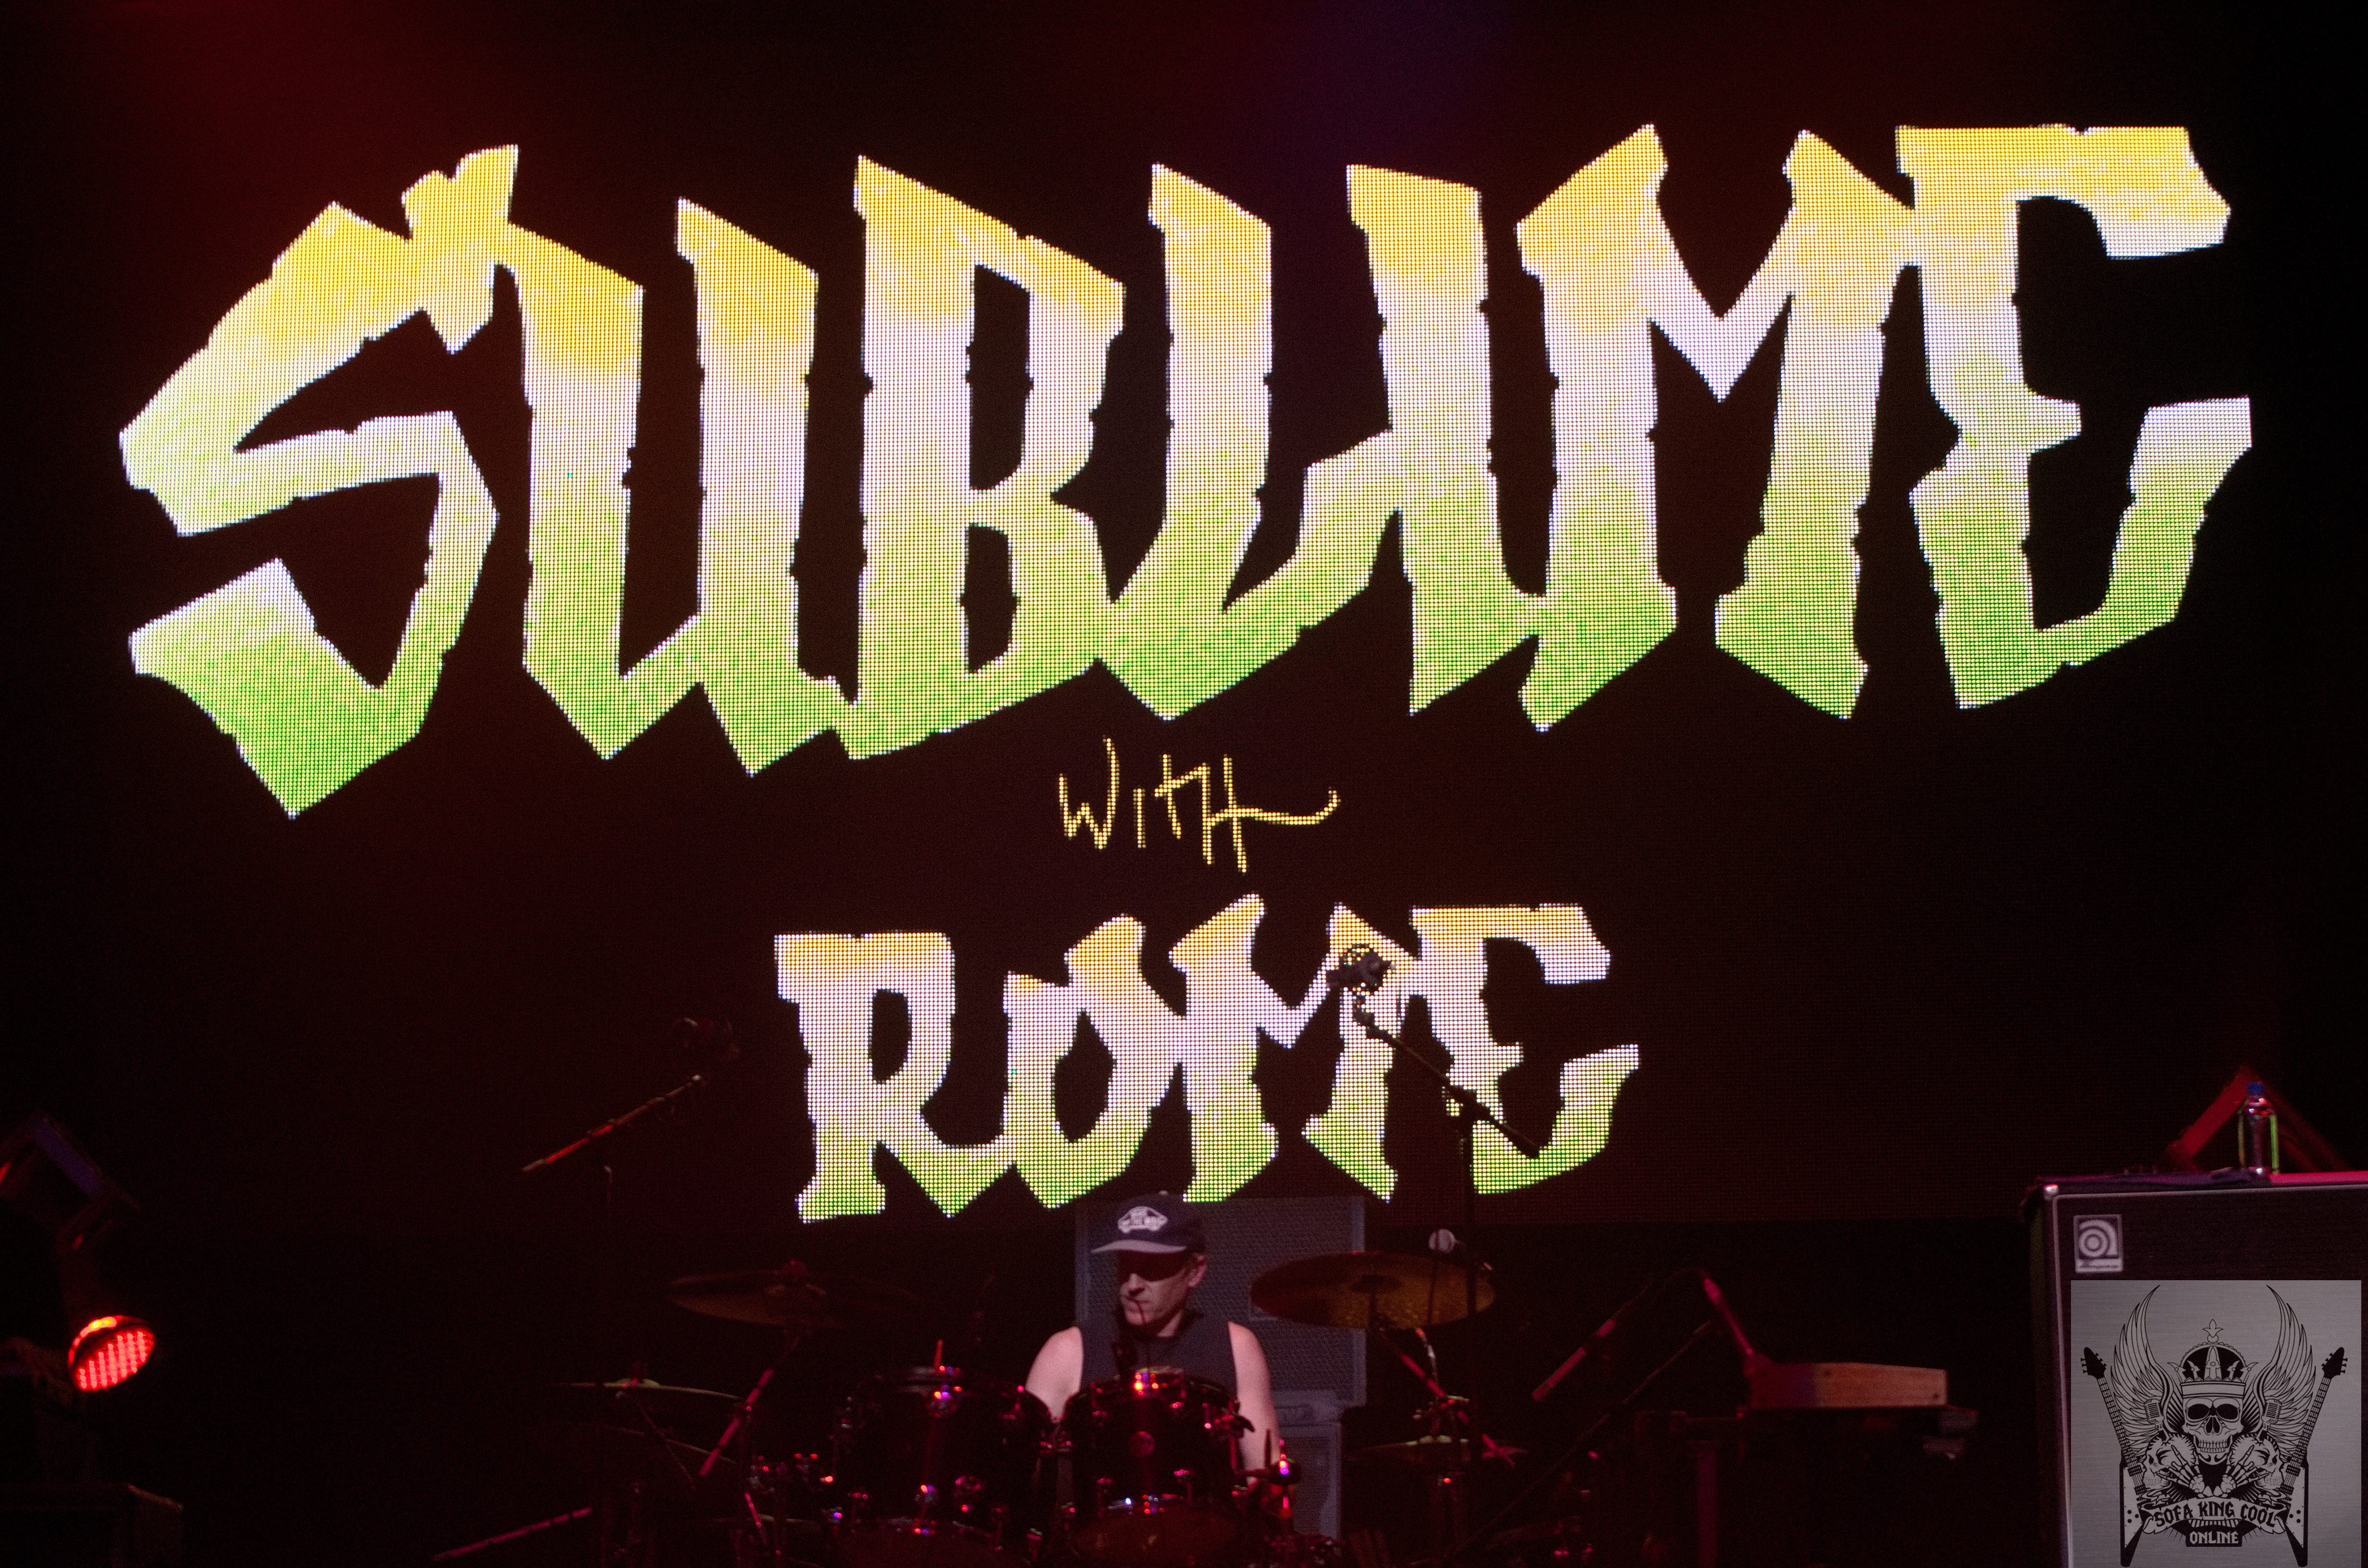 INTERVIEW WITH ROME FROM SUBLIME, STORIES FROM THE ROAD AND CONCERT ...